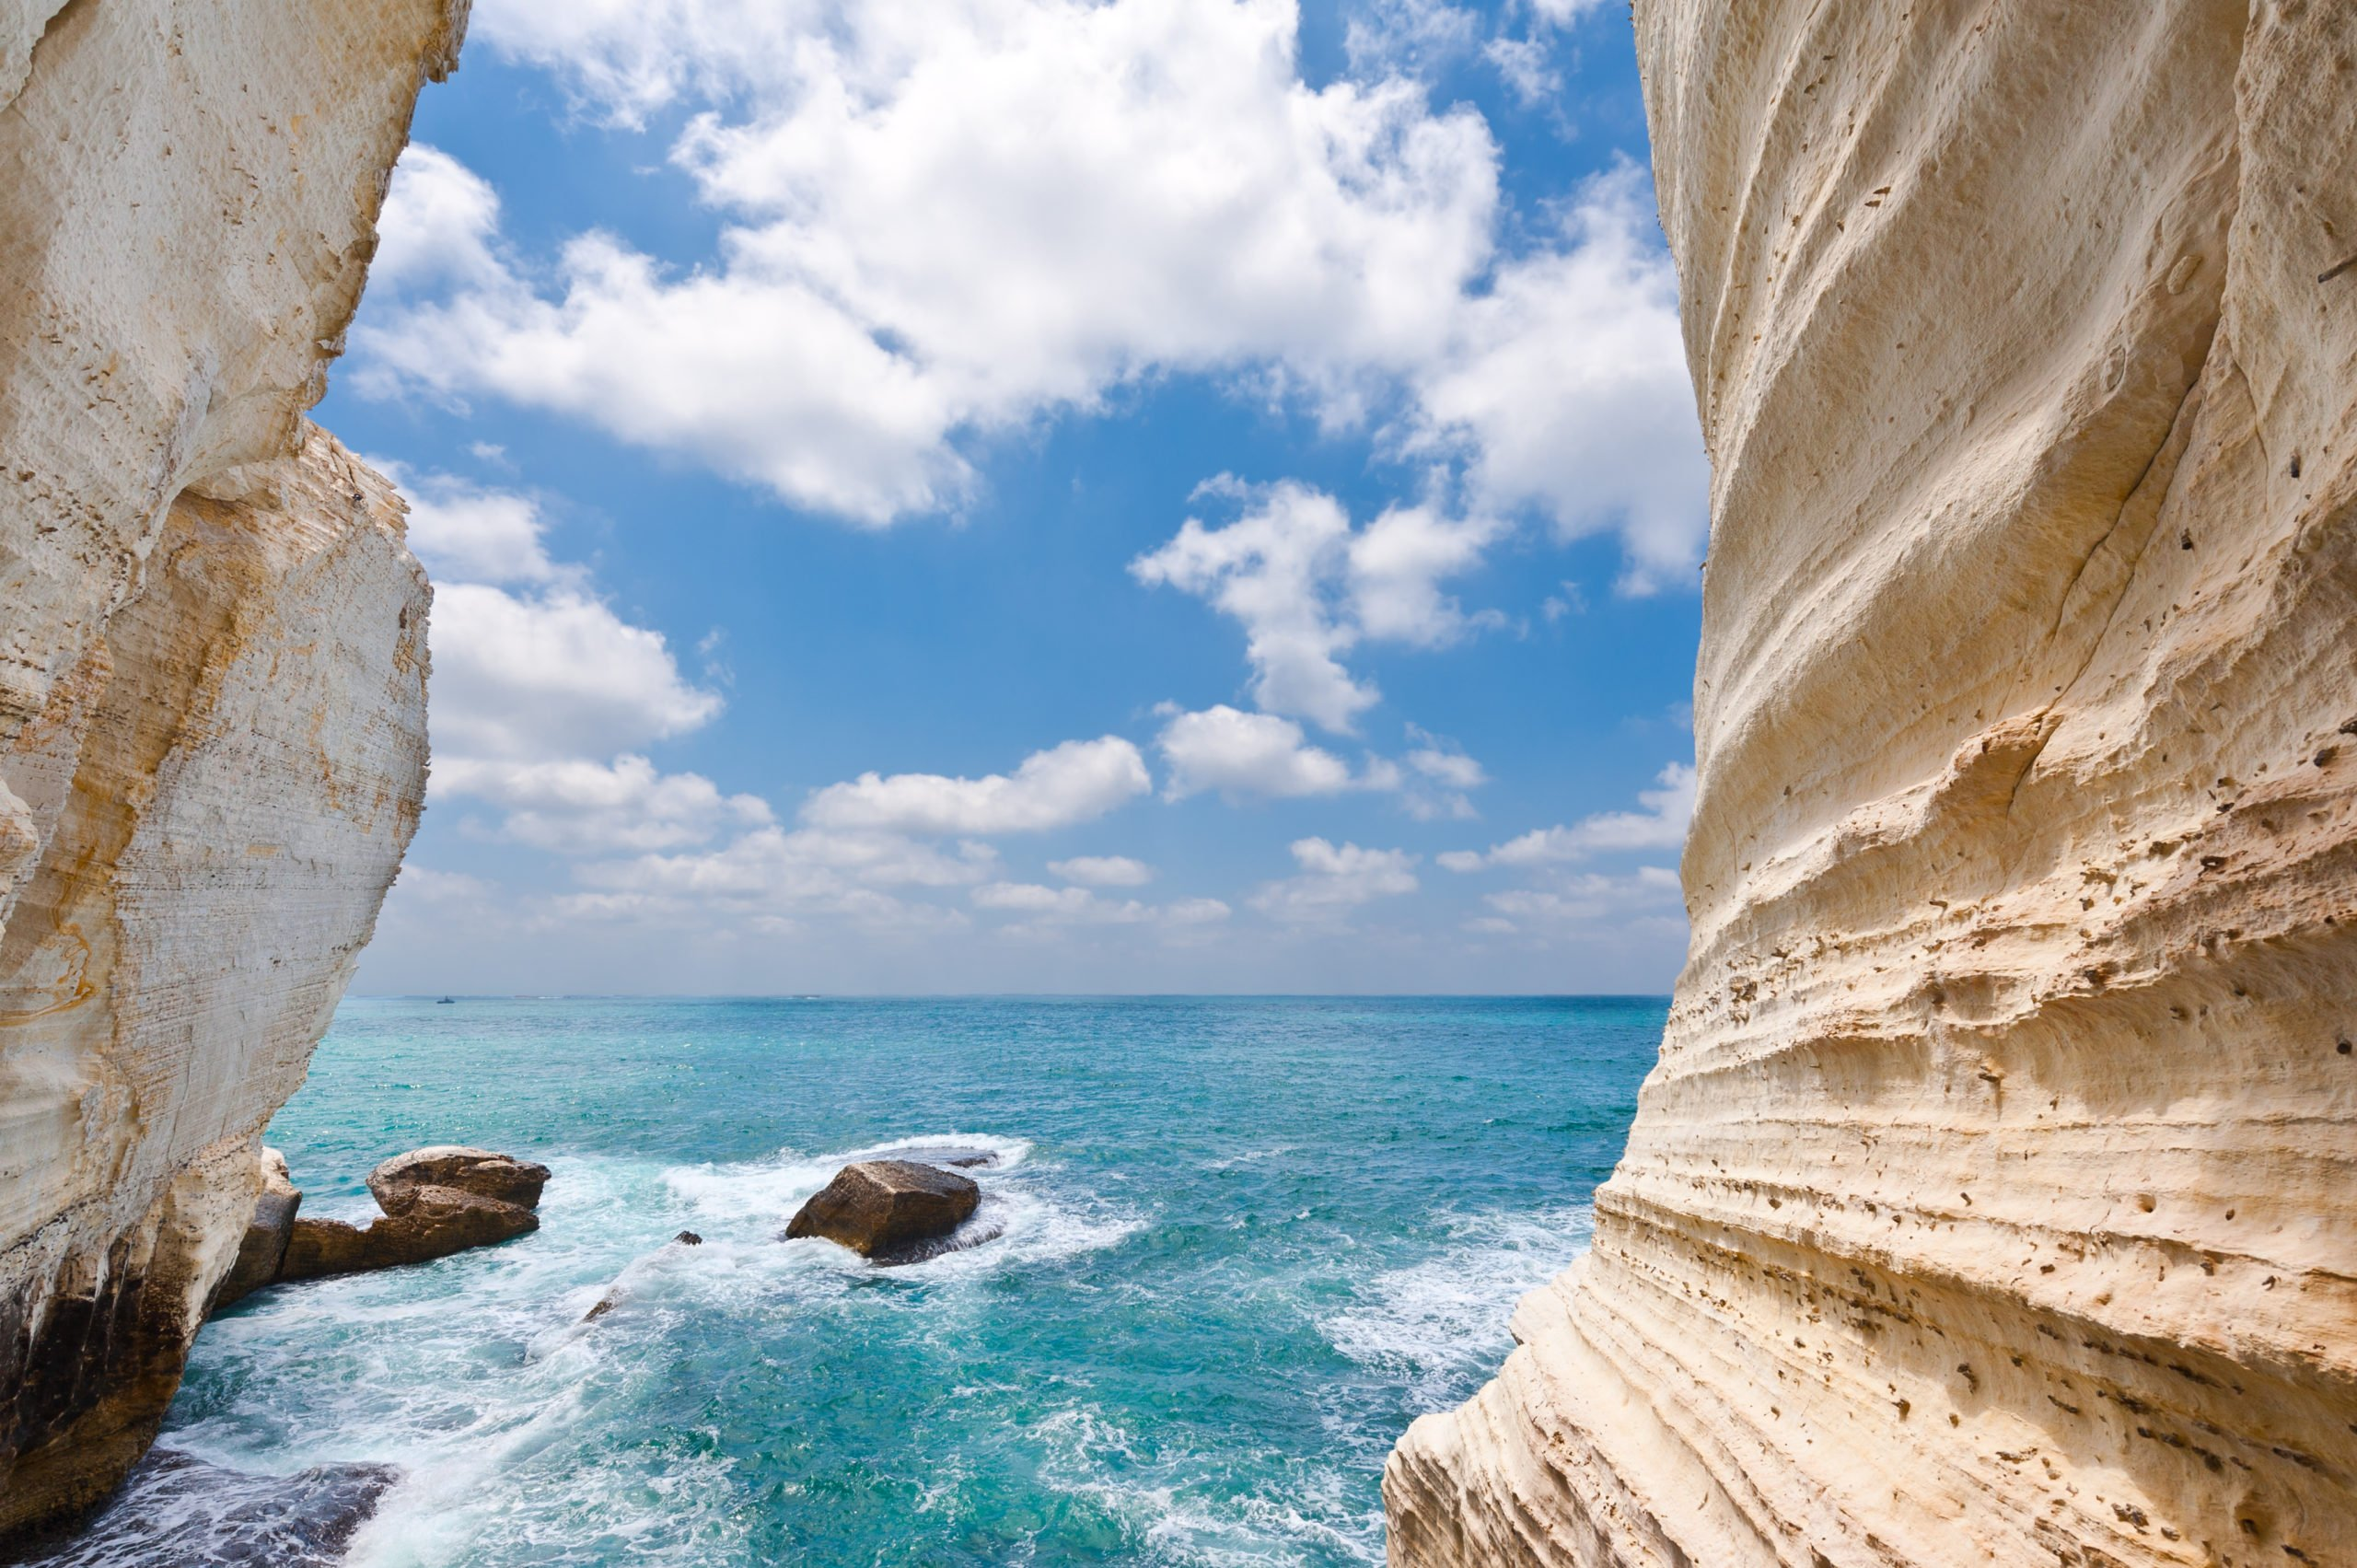 Enjoy A Guided Tour Of Rosh Hanikra On The 13 Day Highlights Of Israel Saudi Arabia Jordan Package Tour Scaled